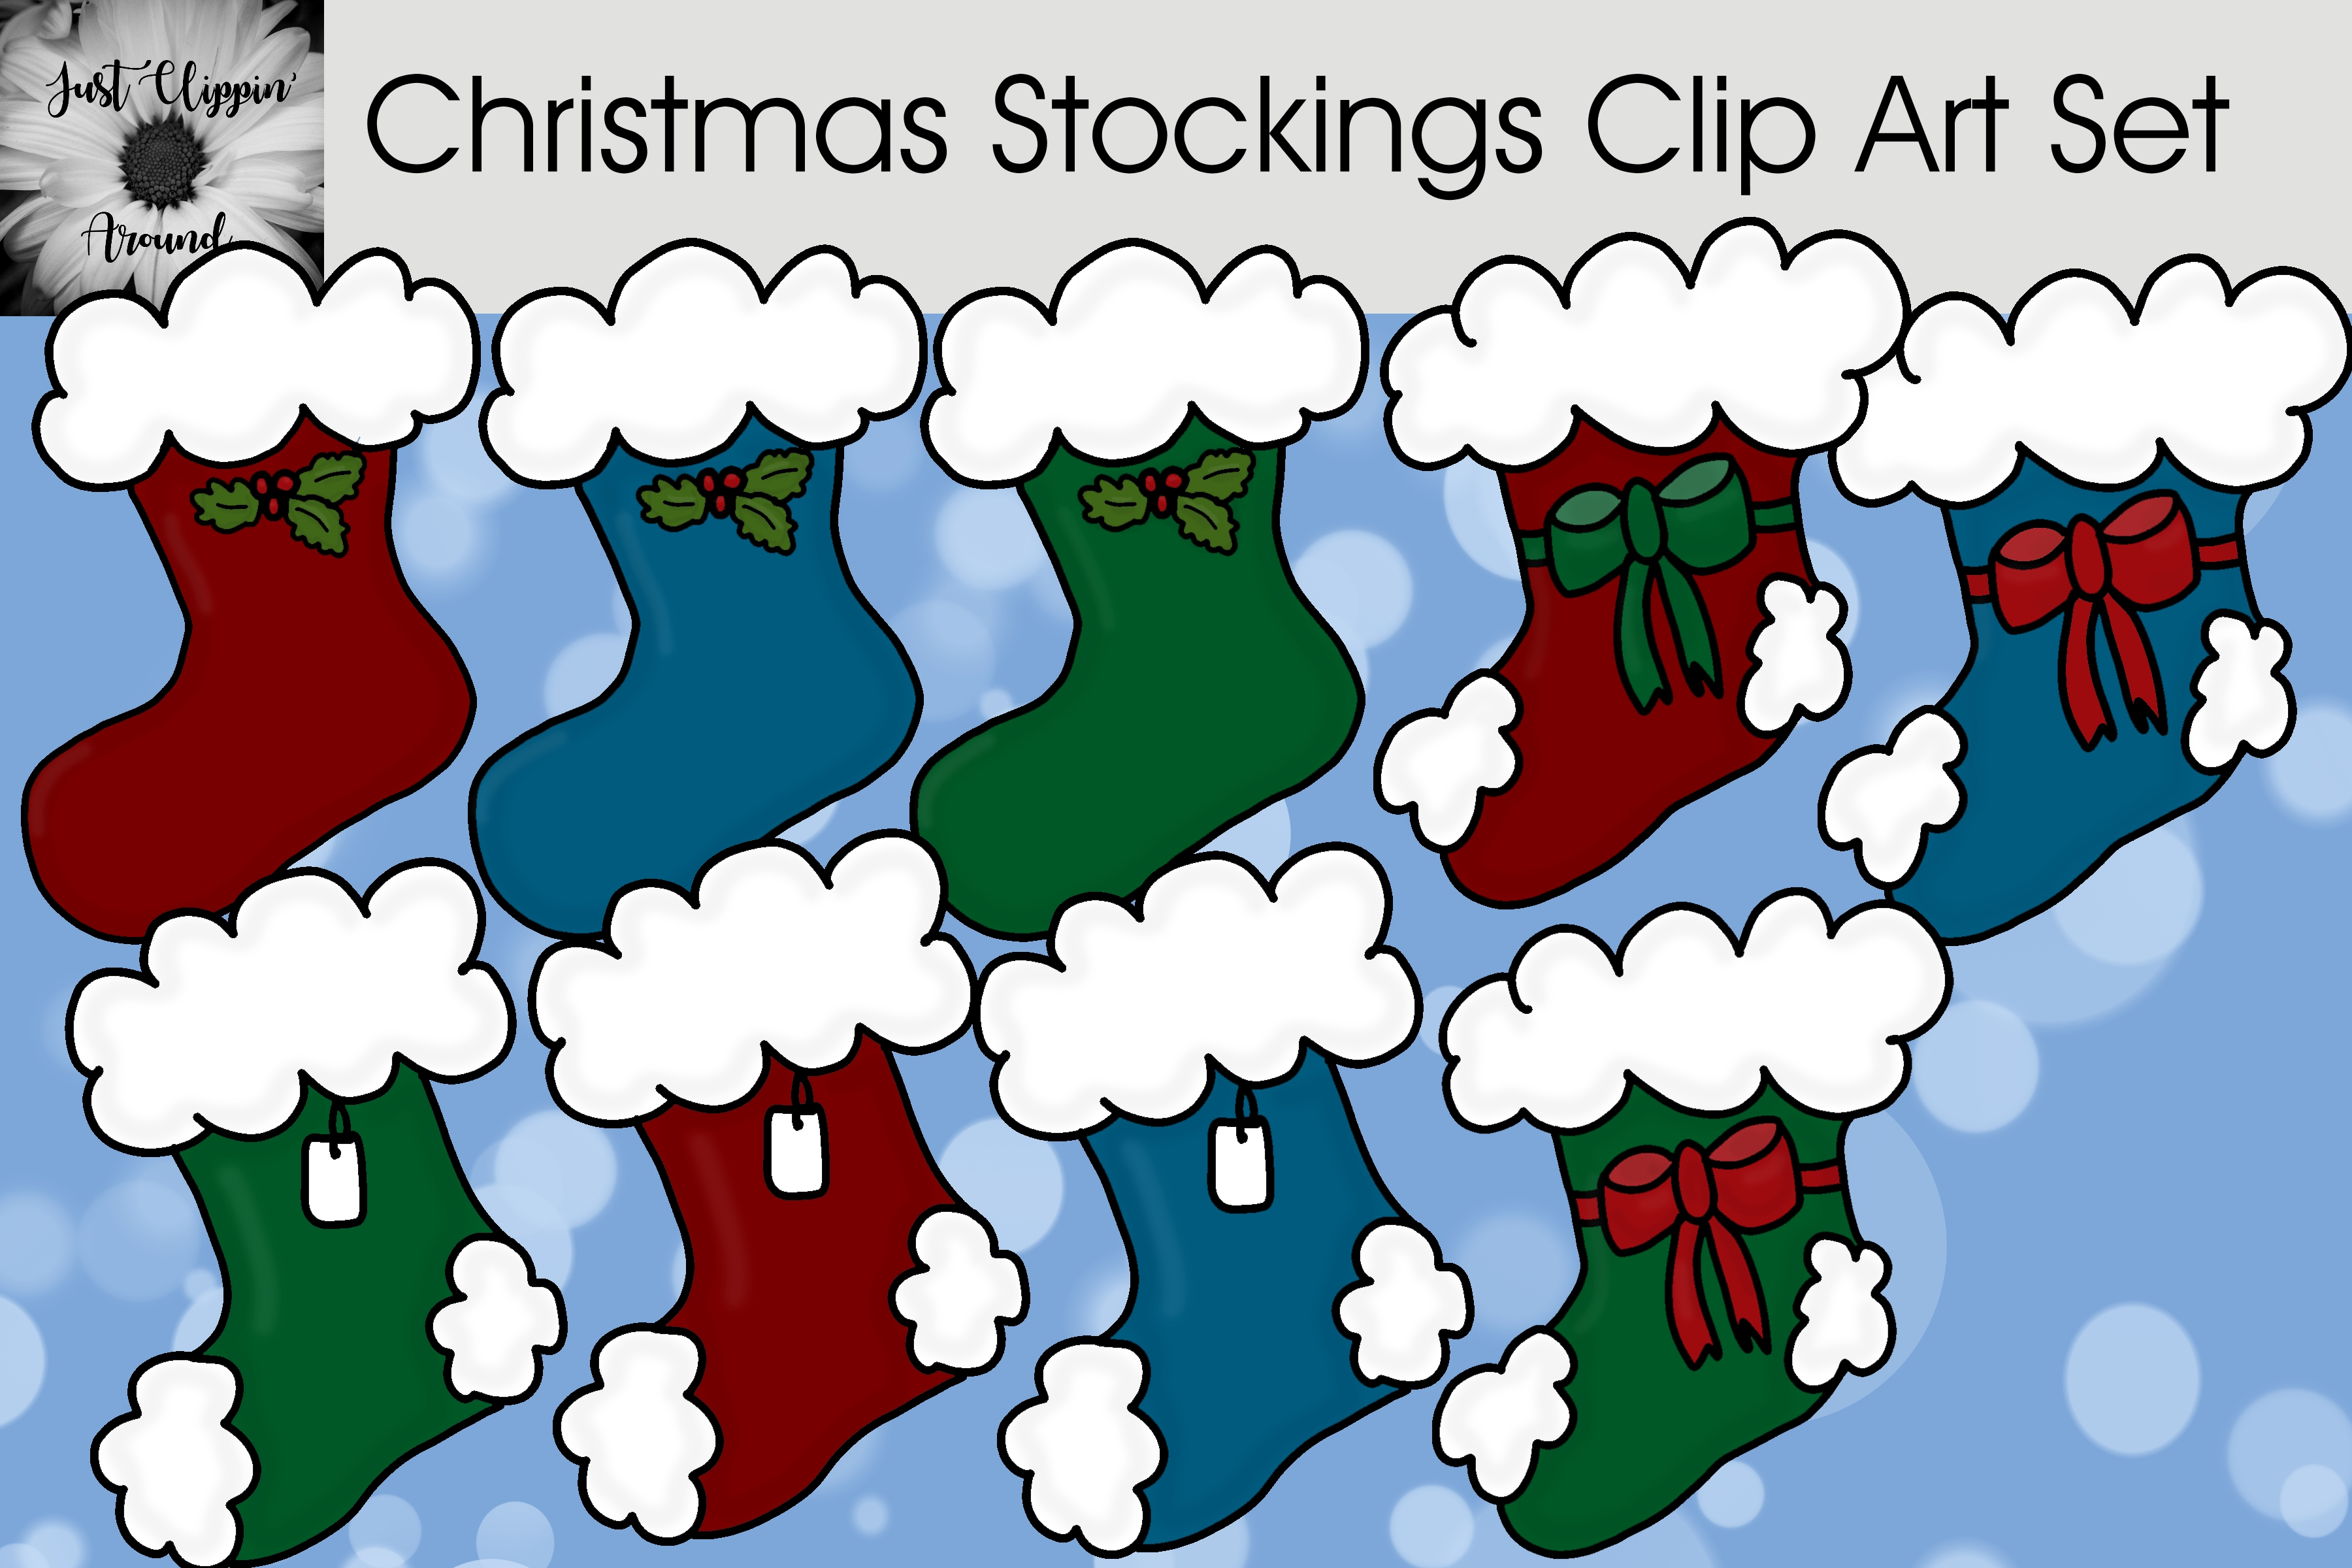 Download Free Christmas Stockings Clip Art Graphic By Justclippinaround for Cricut Explore, Silhouette and other cutting machines.